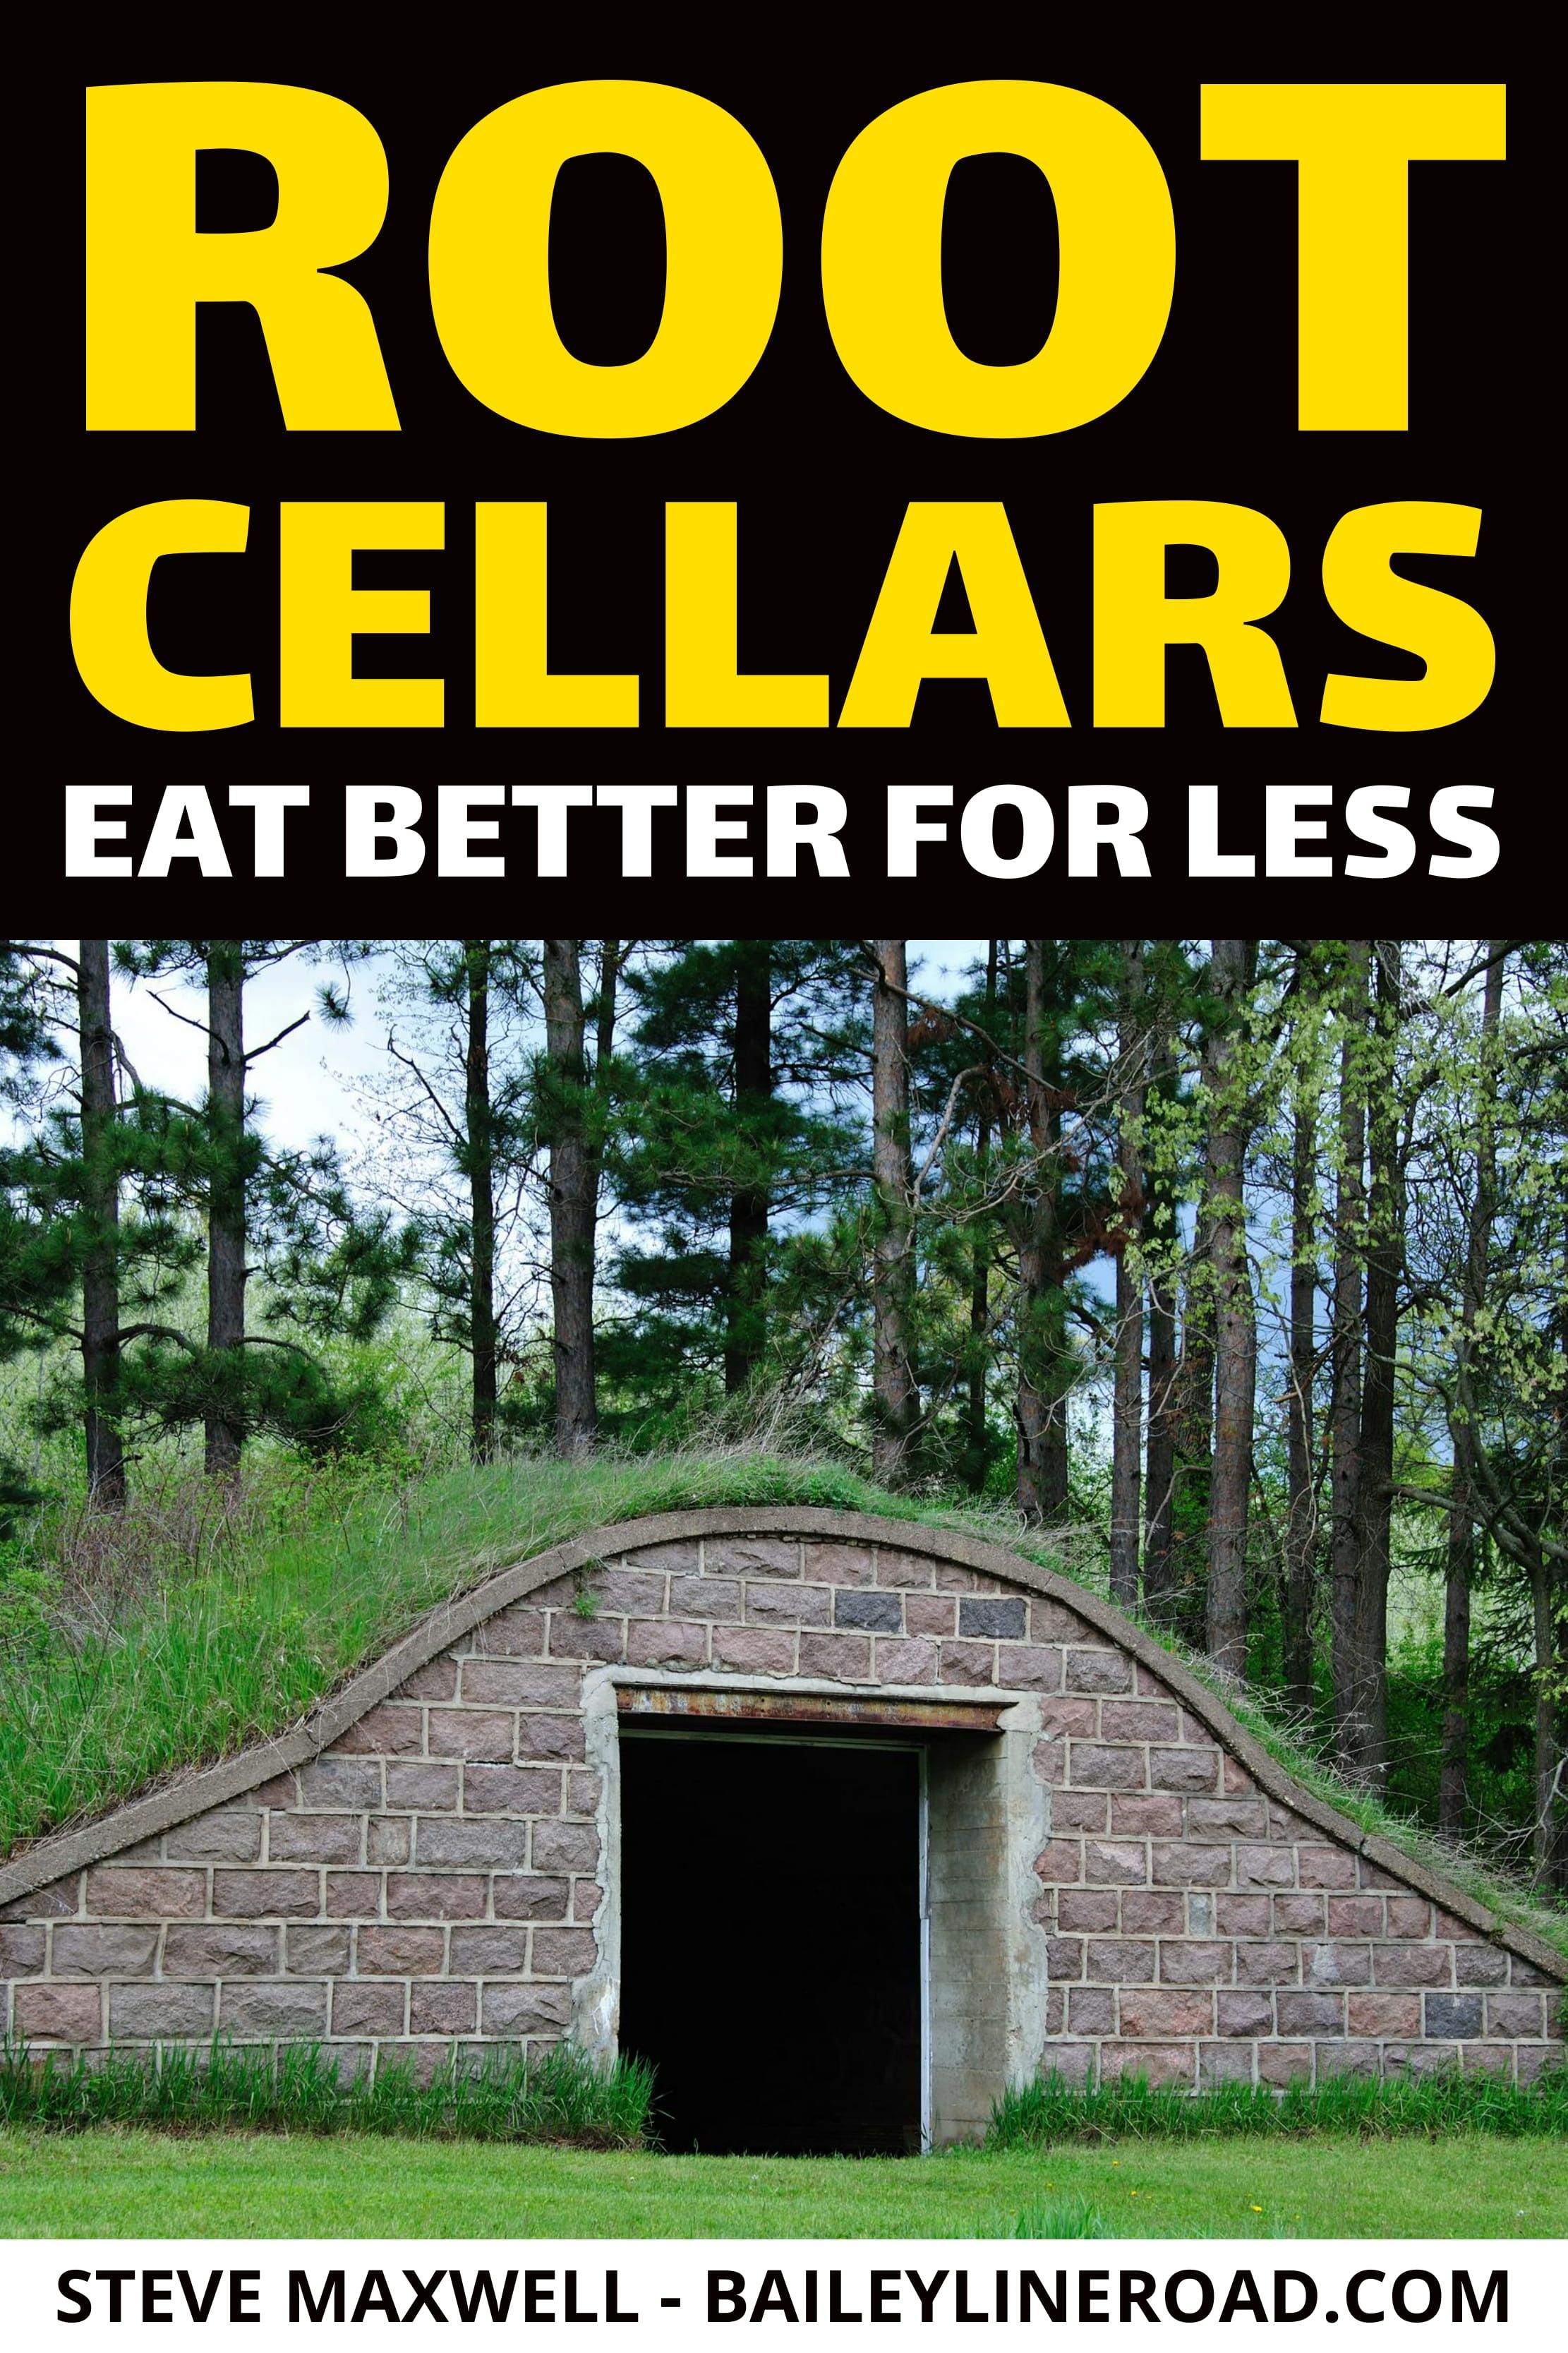 ROOT CELLARS Eat Better for Less Concrete front steps